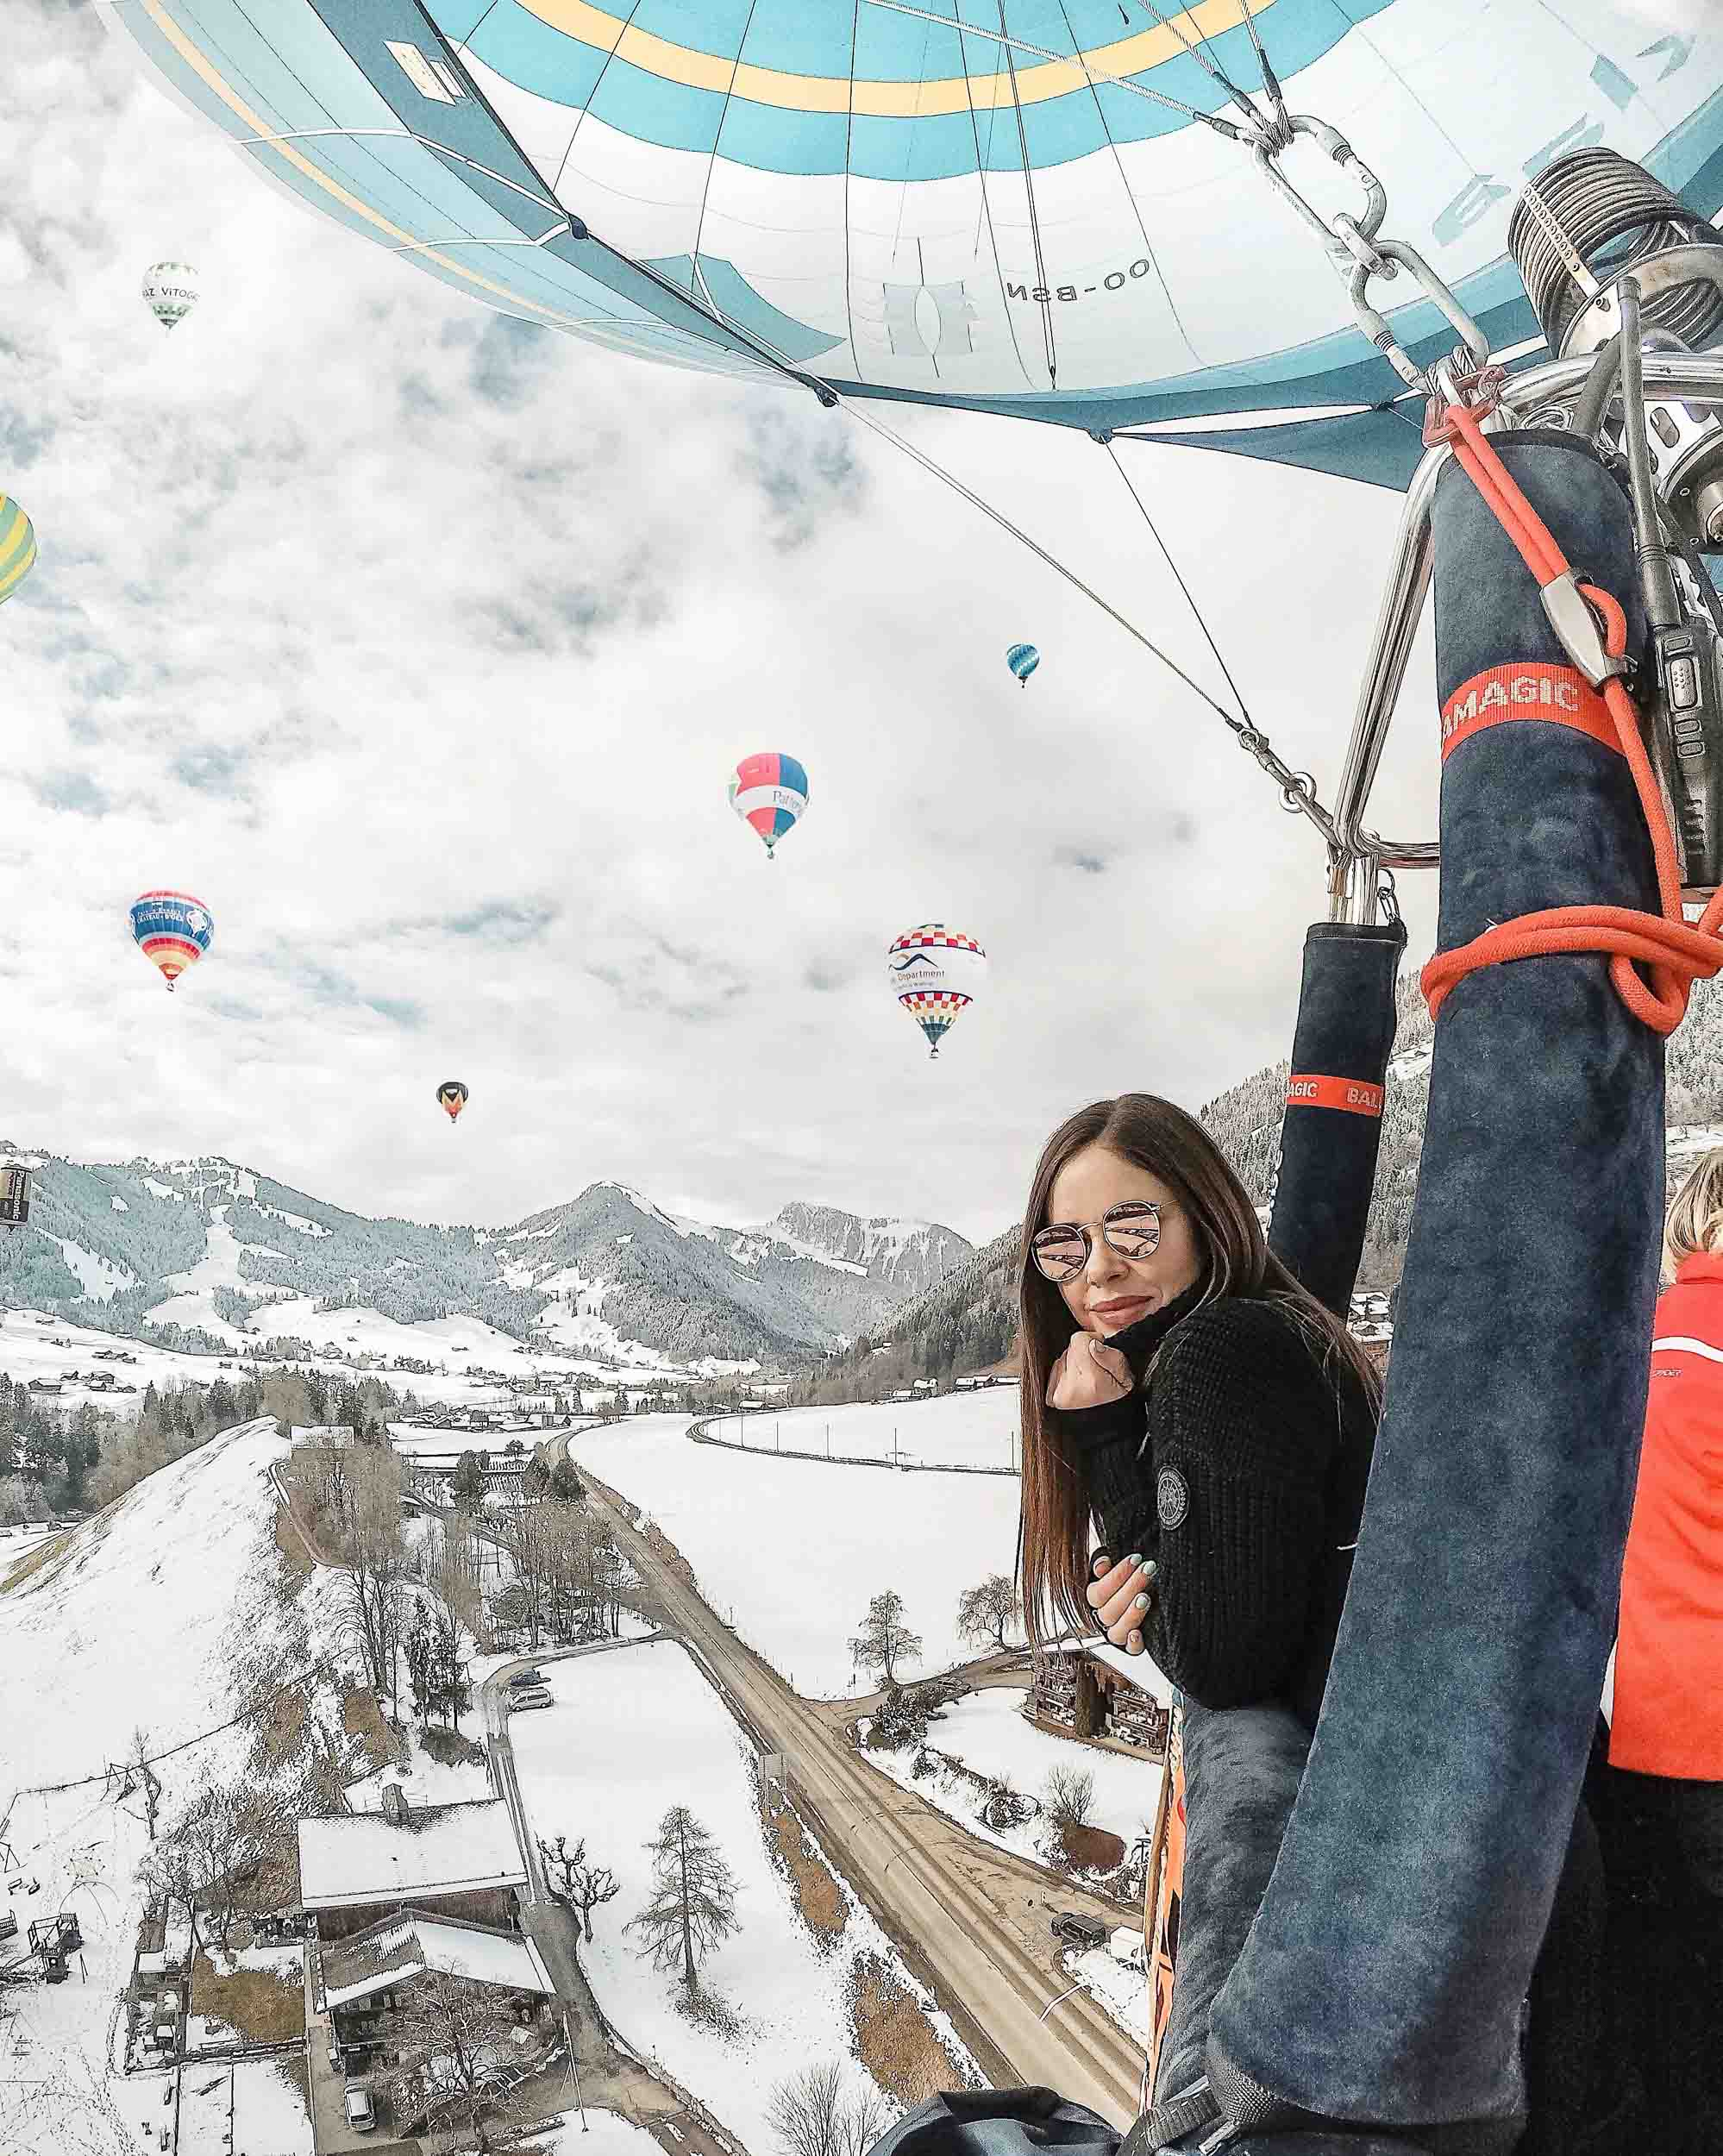 Hot air balloon ride in Chateau d'Oex - a unique winter adventure!